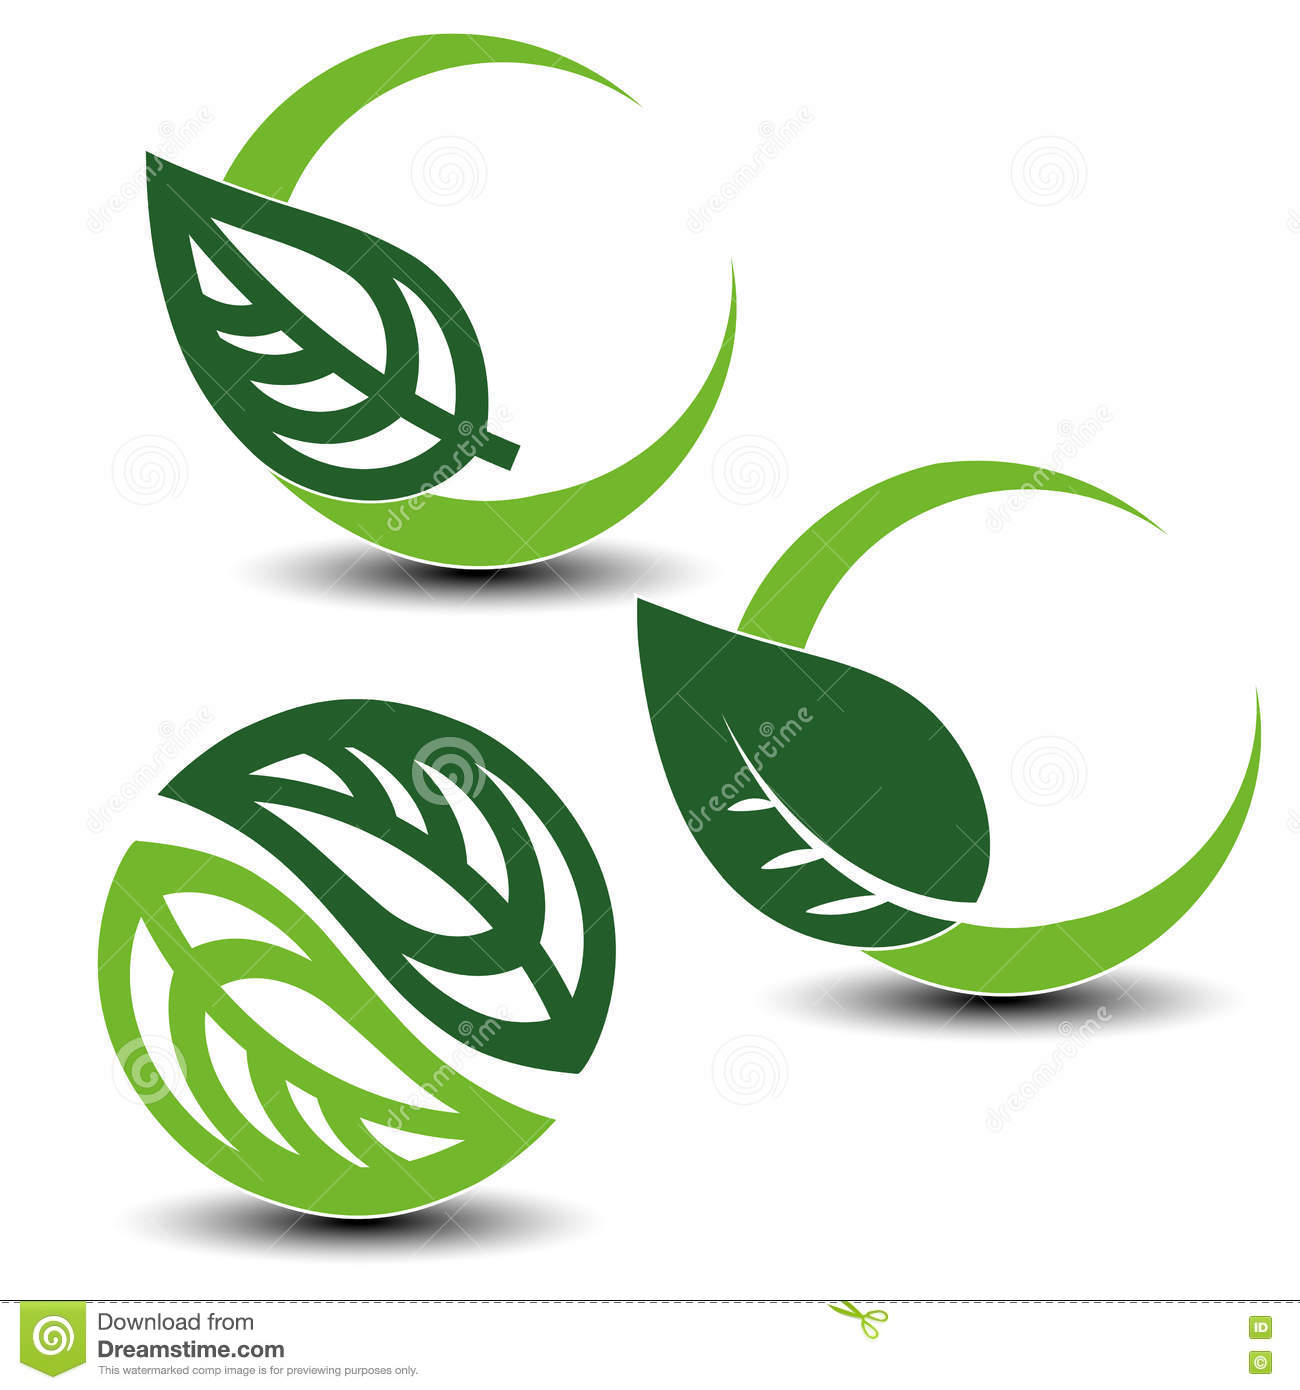 Nature Circular Symbols With Leaf, Natural Simple Elements, Green.